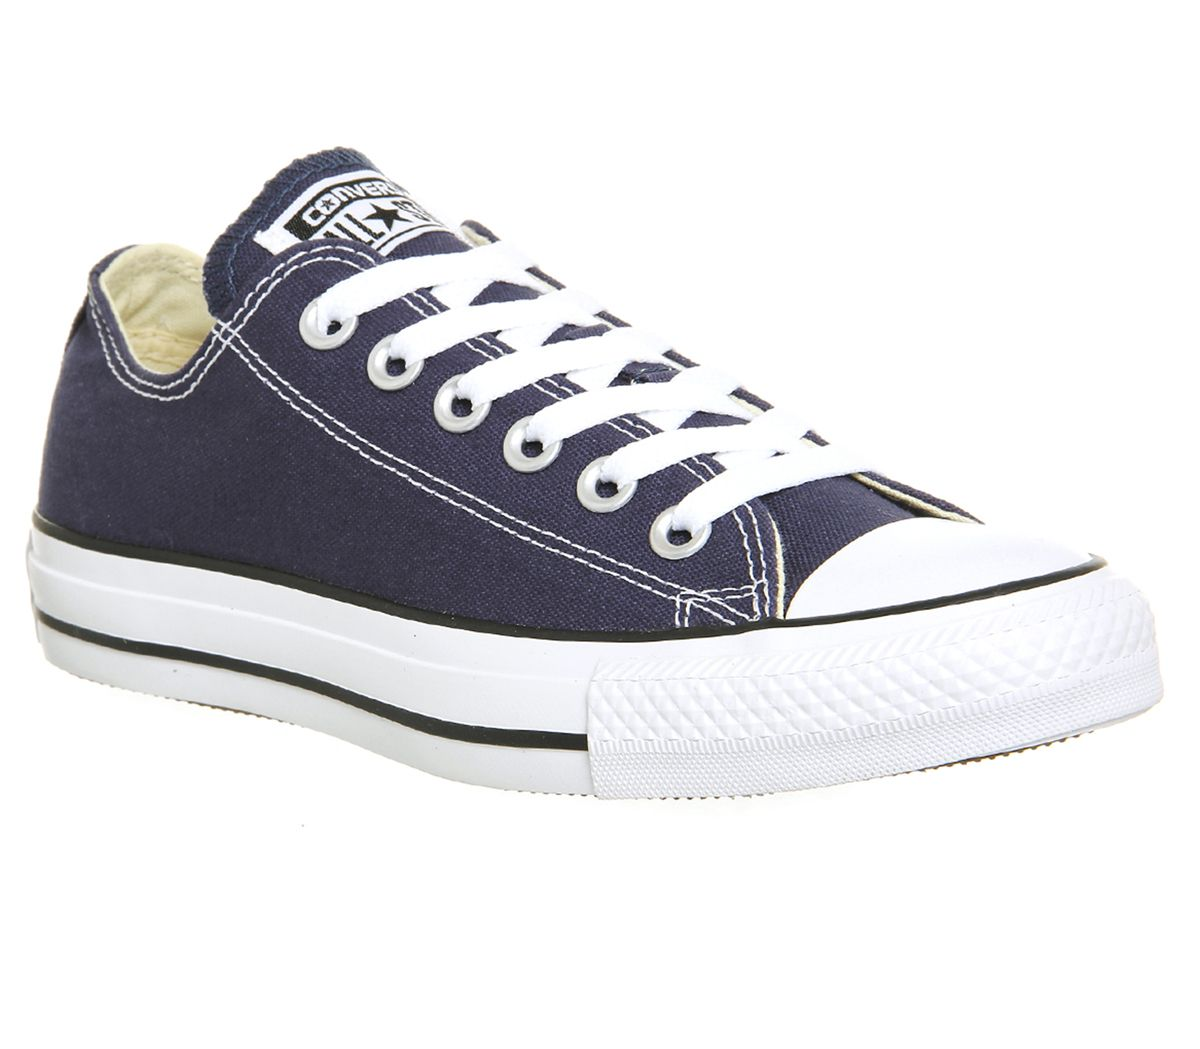 ed0e821b5b967b Converse All Star Low Navy Canvas - Unisex Sports